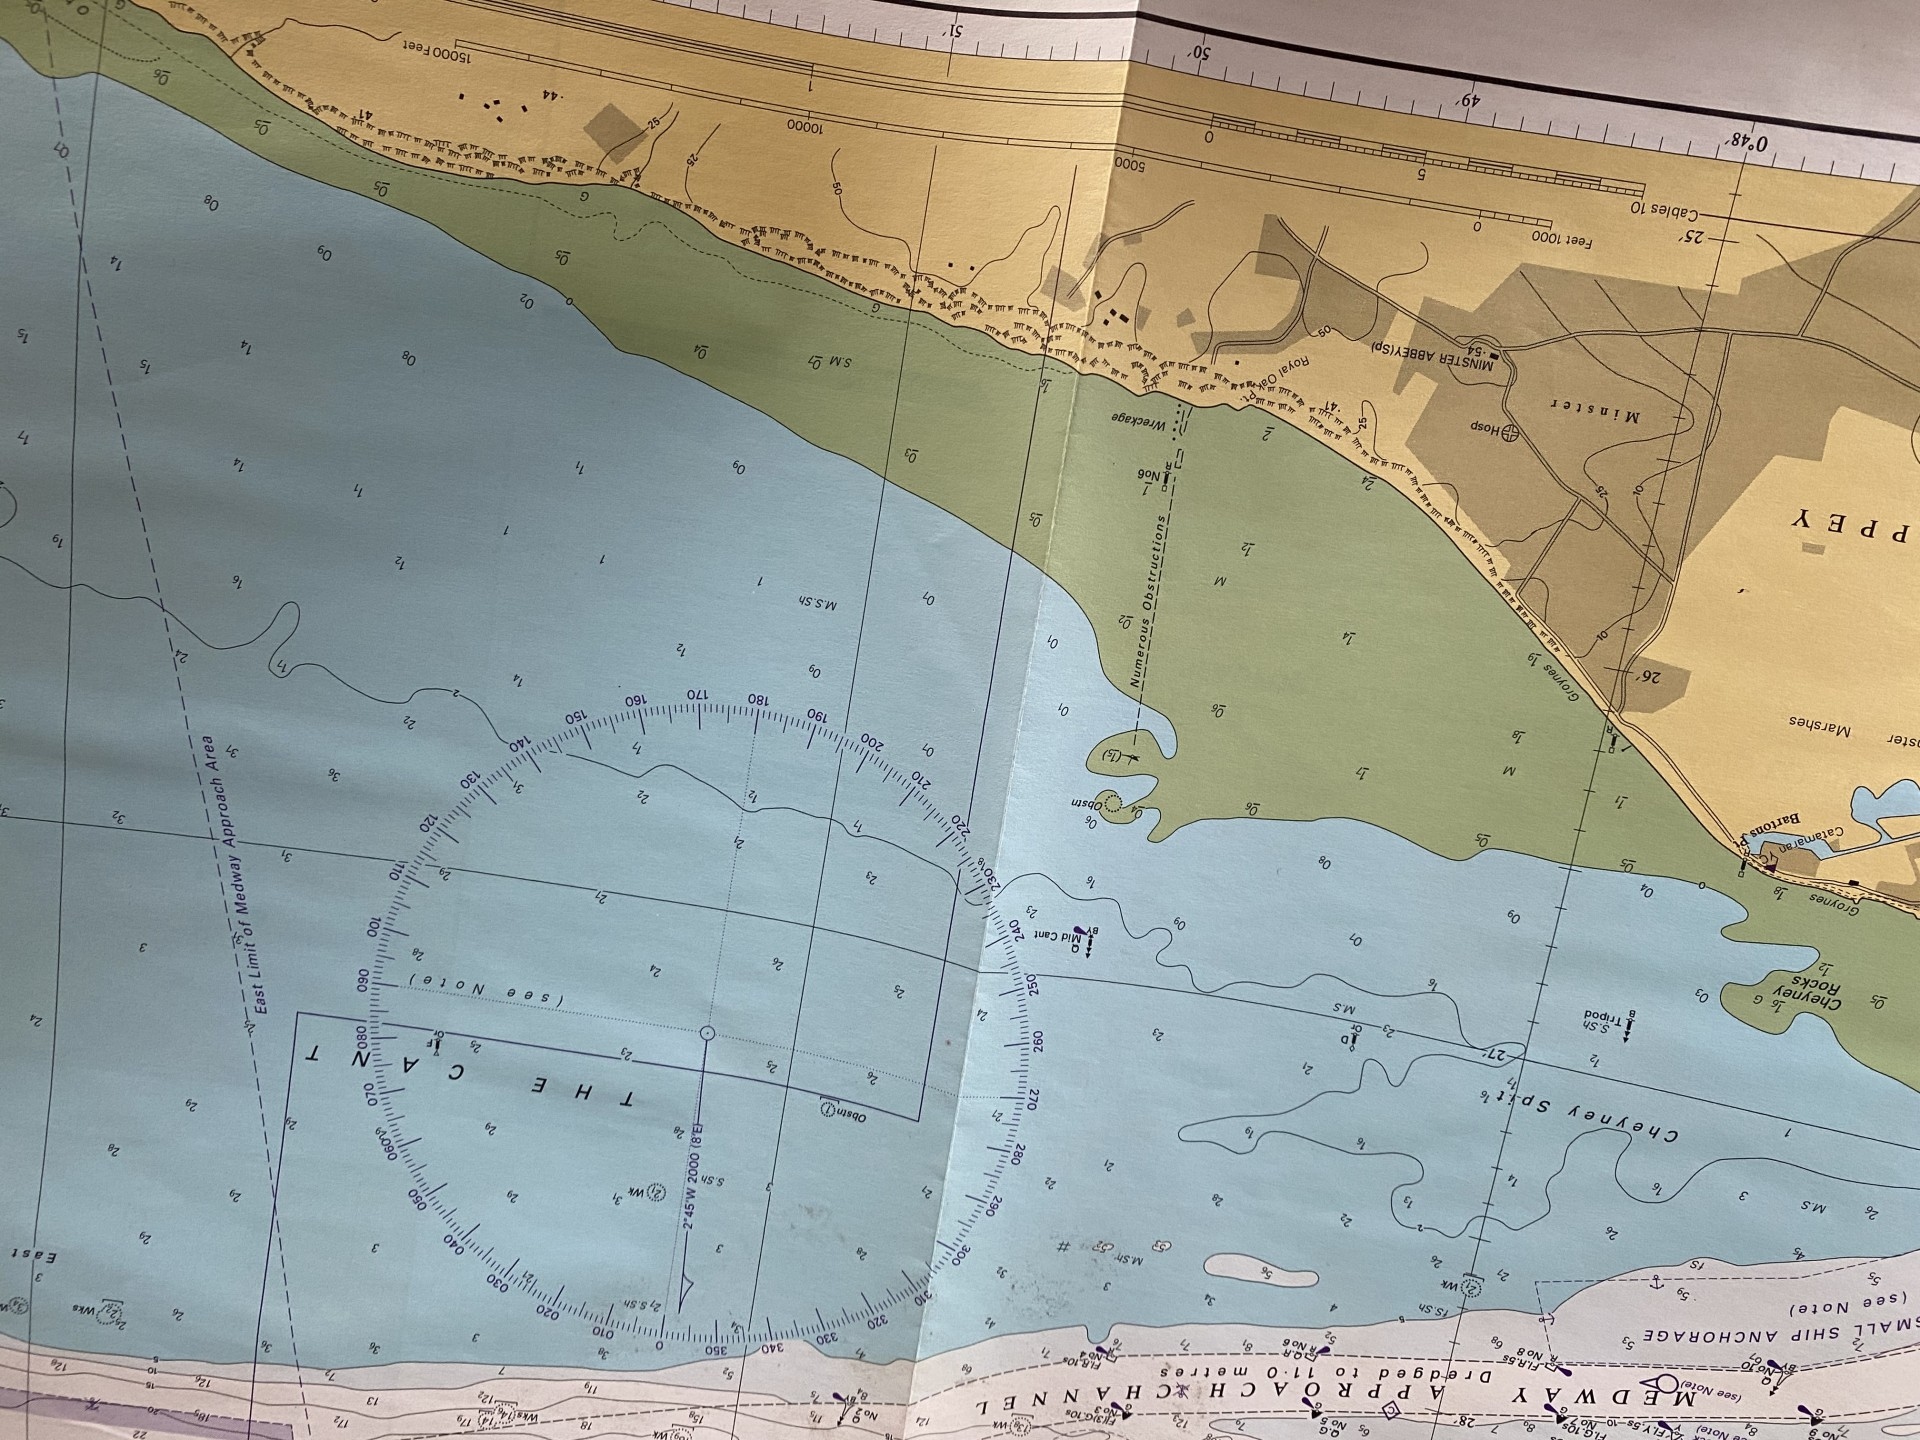 A view of an Admiralty chart showing deep water in blue